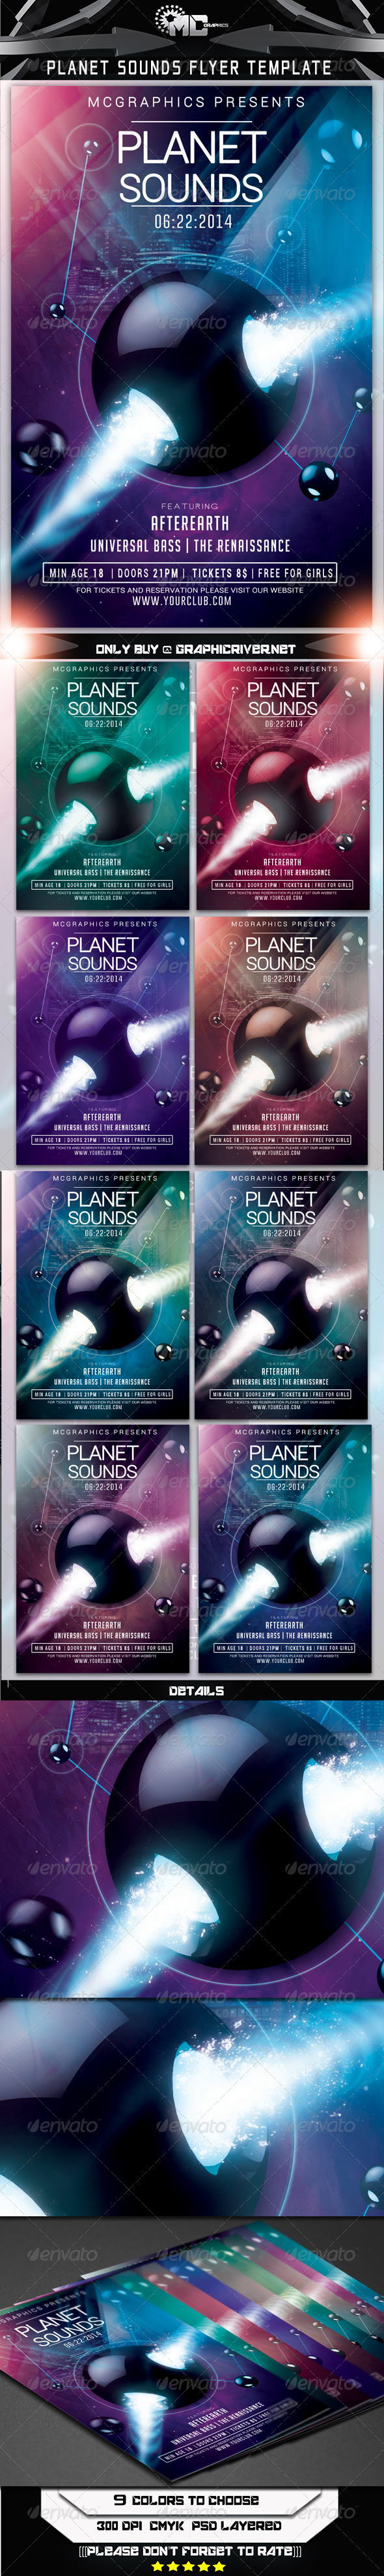 GraphicRiver Planet Sounds Flyer Template 7609842